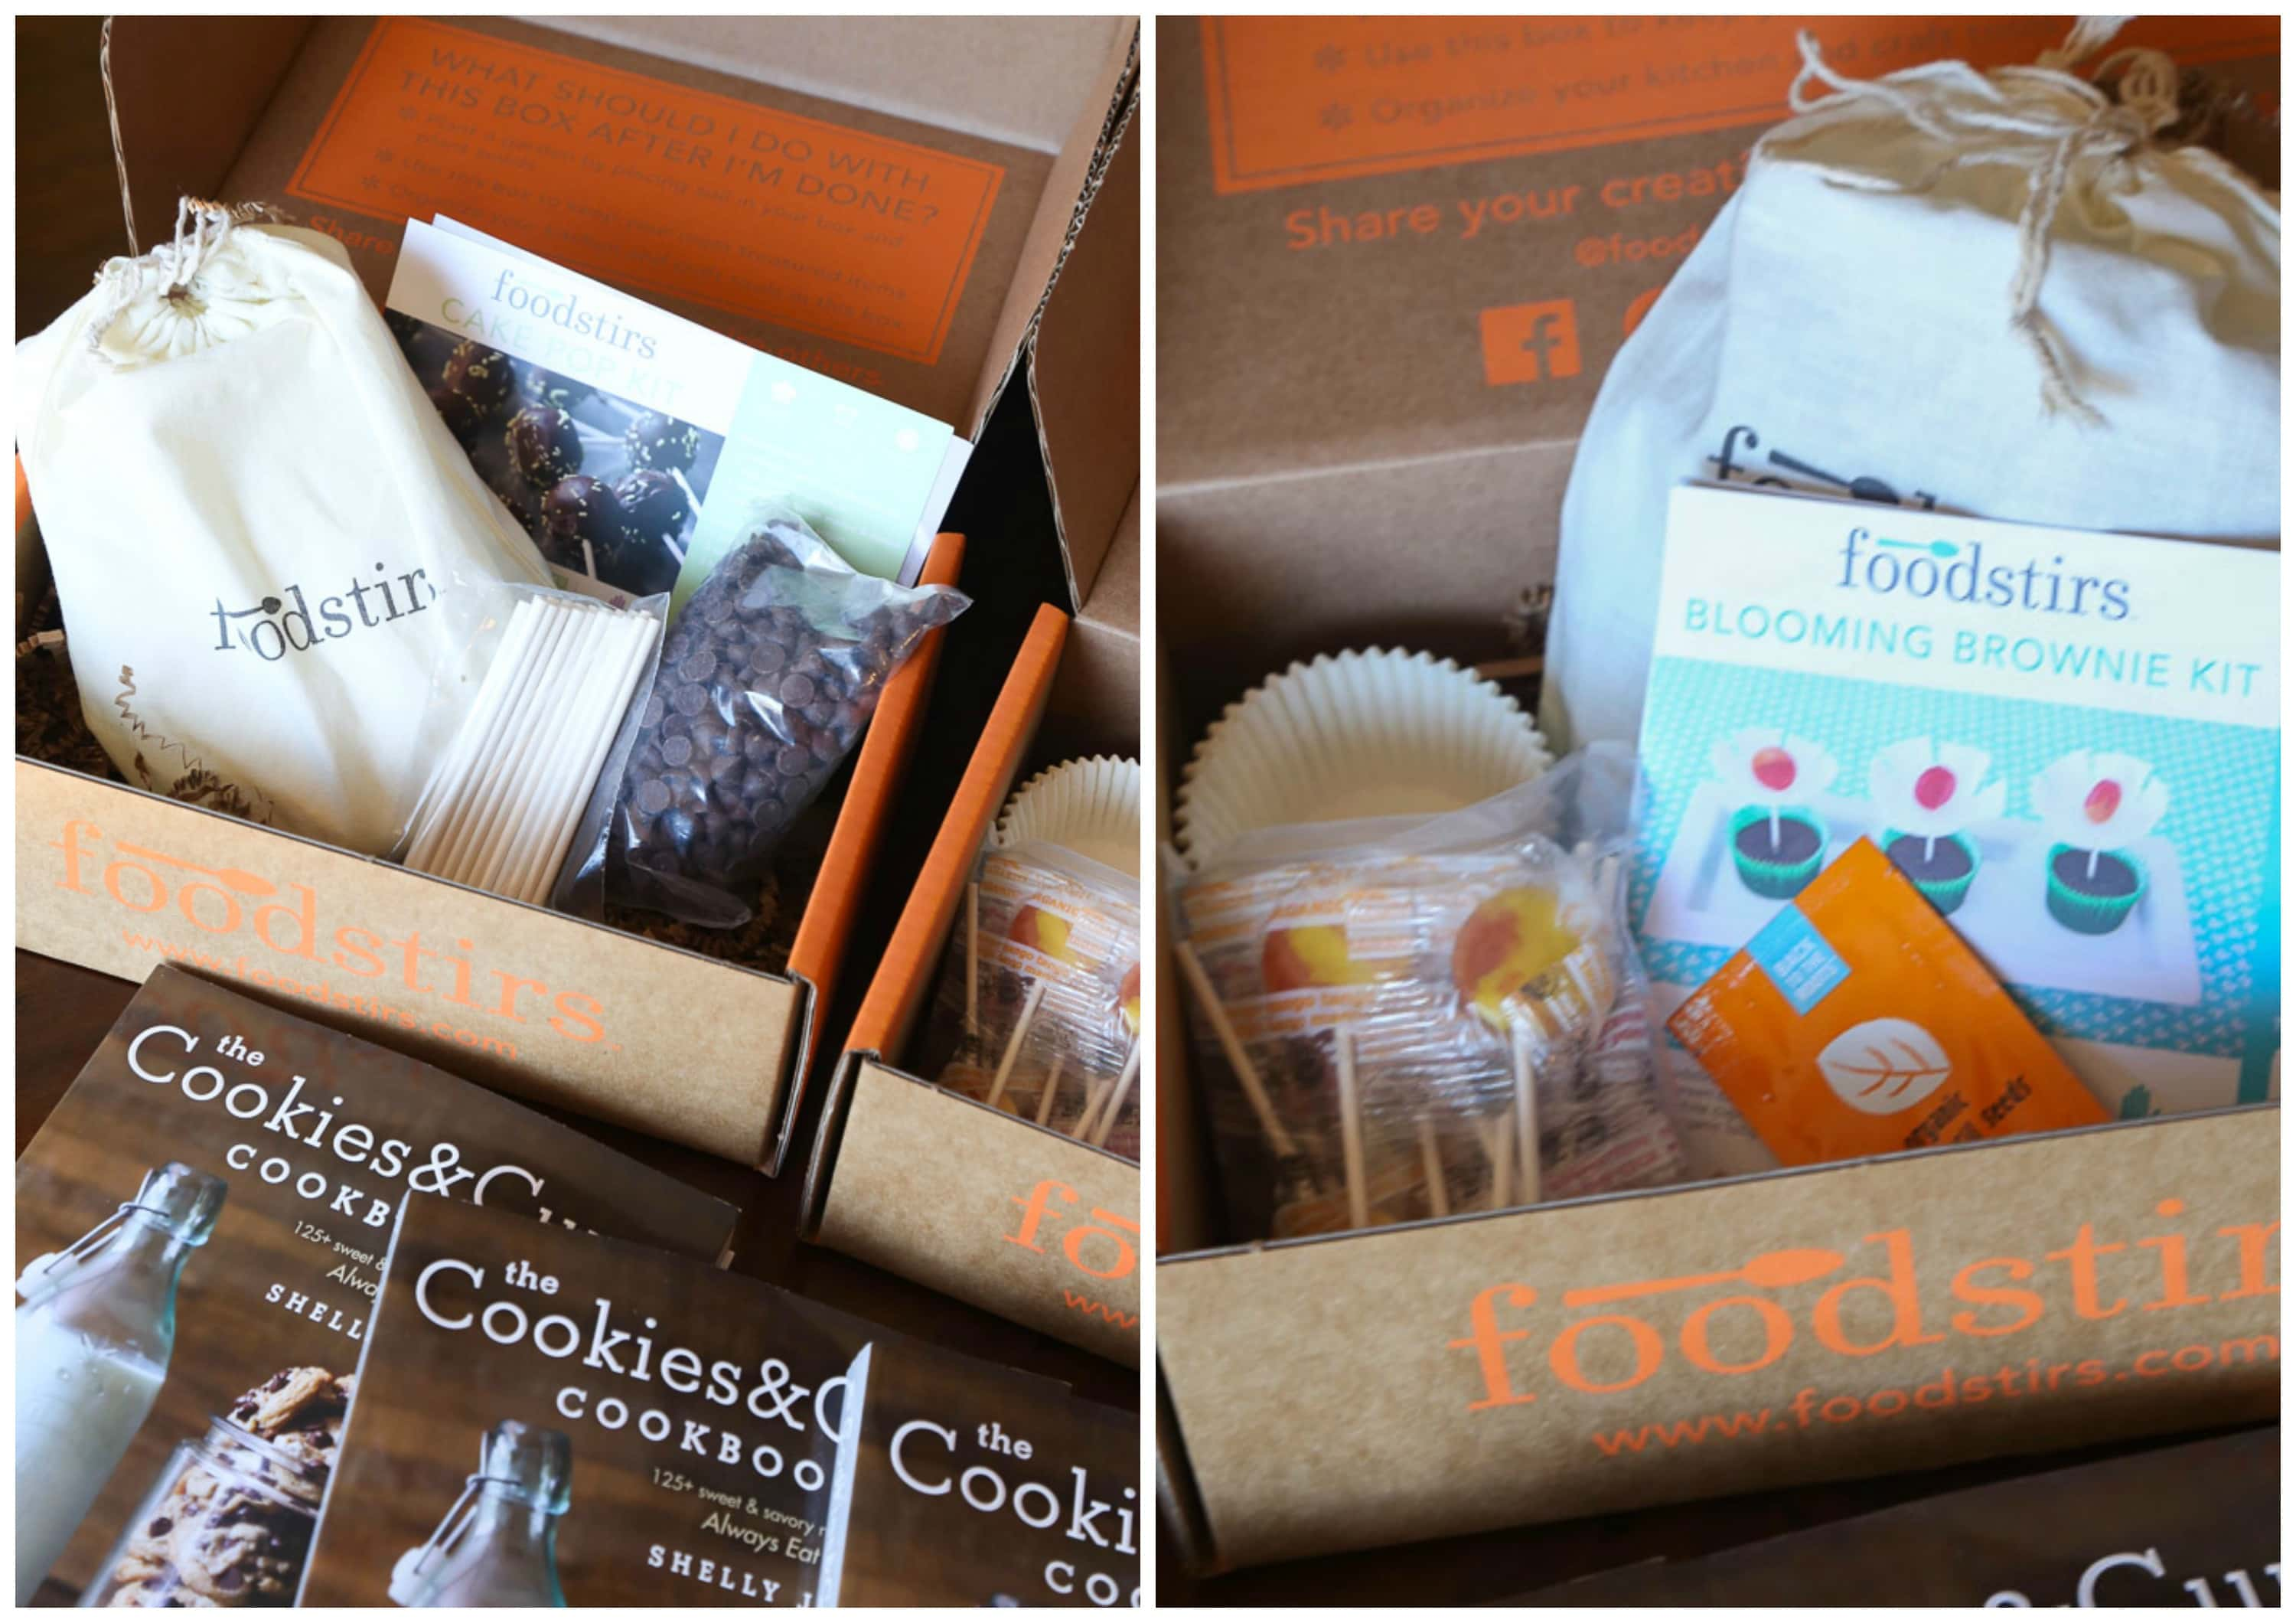 A Collage of Two Images of Foodstirs Food and Other Giveaway Prizes